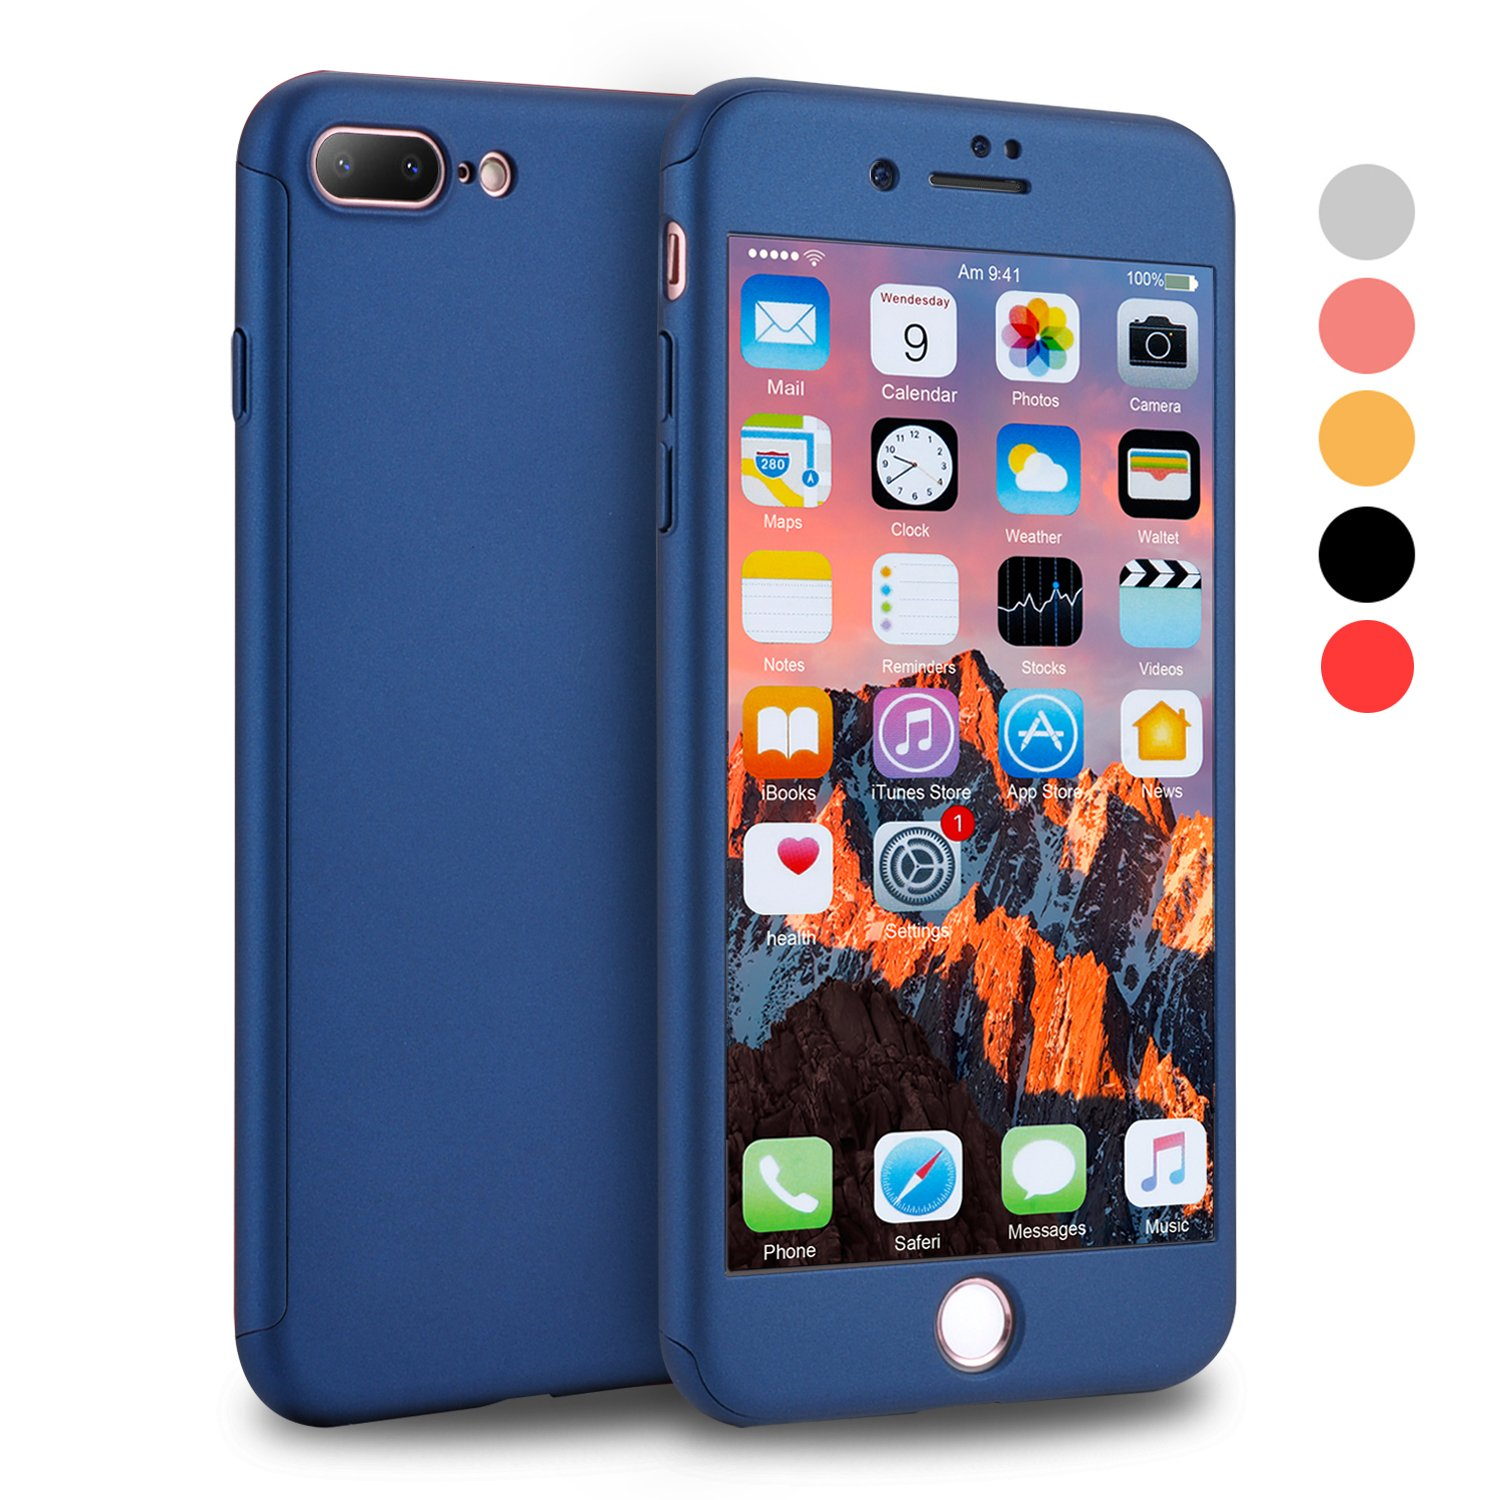 iPhone 7 Plus Case, VANSIN 360 Full Body Protection Hard Slim Case Coated Non Slip Matte Surface with Tempered Glass Screen Protector for Apple iPhone 7 Plus (5.5-inch) - Navy Blue by VANSIN